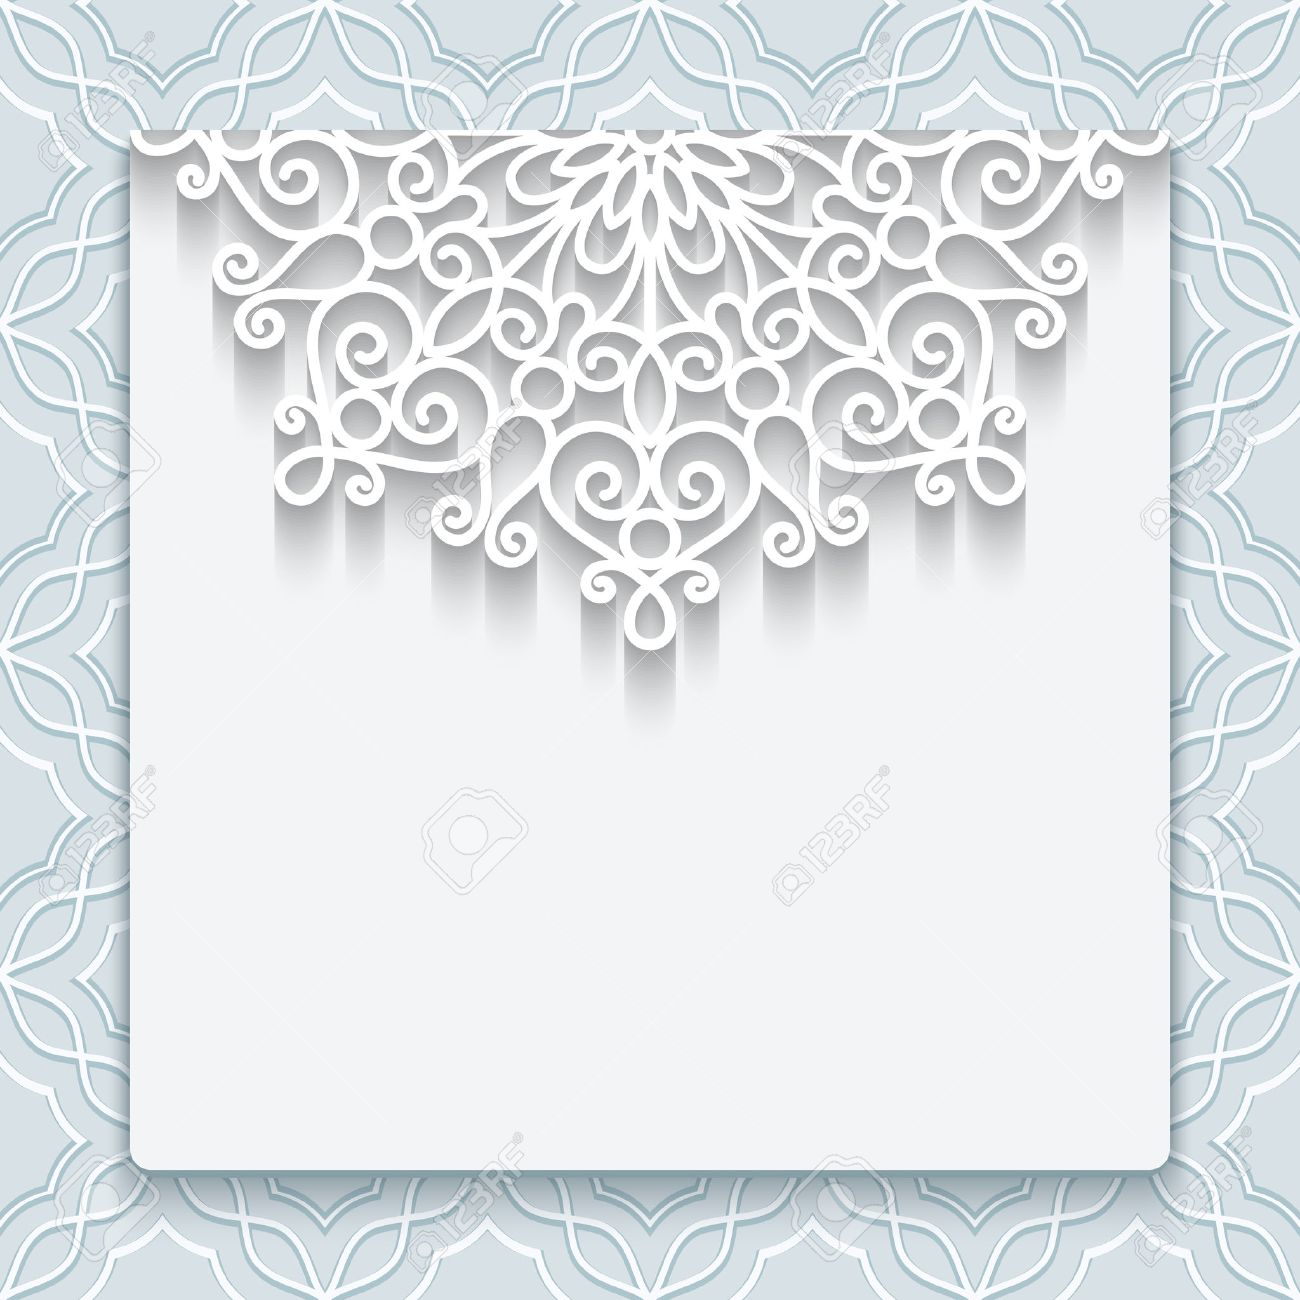 Elegant Save The Date Card With Lace Decoration, Vintage Wedding ...